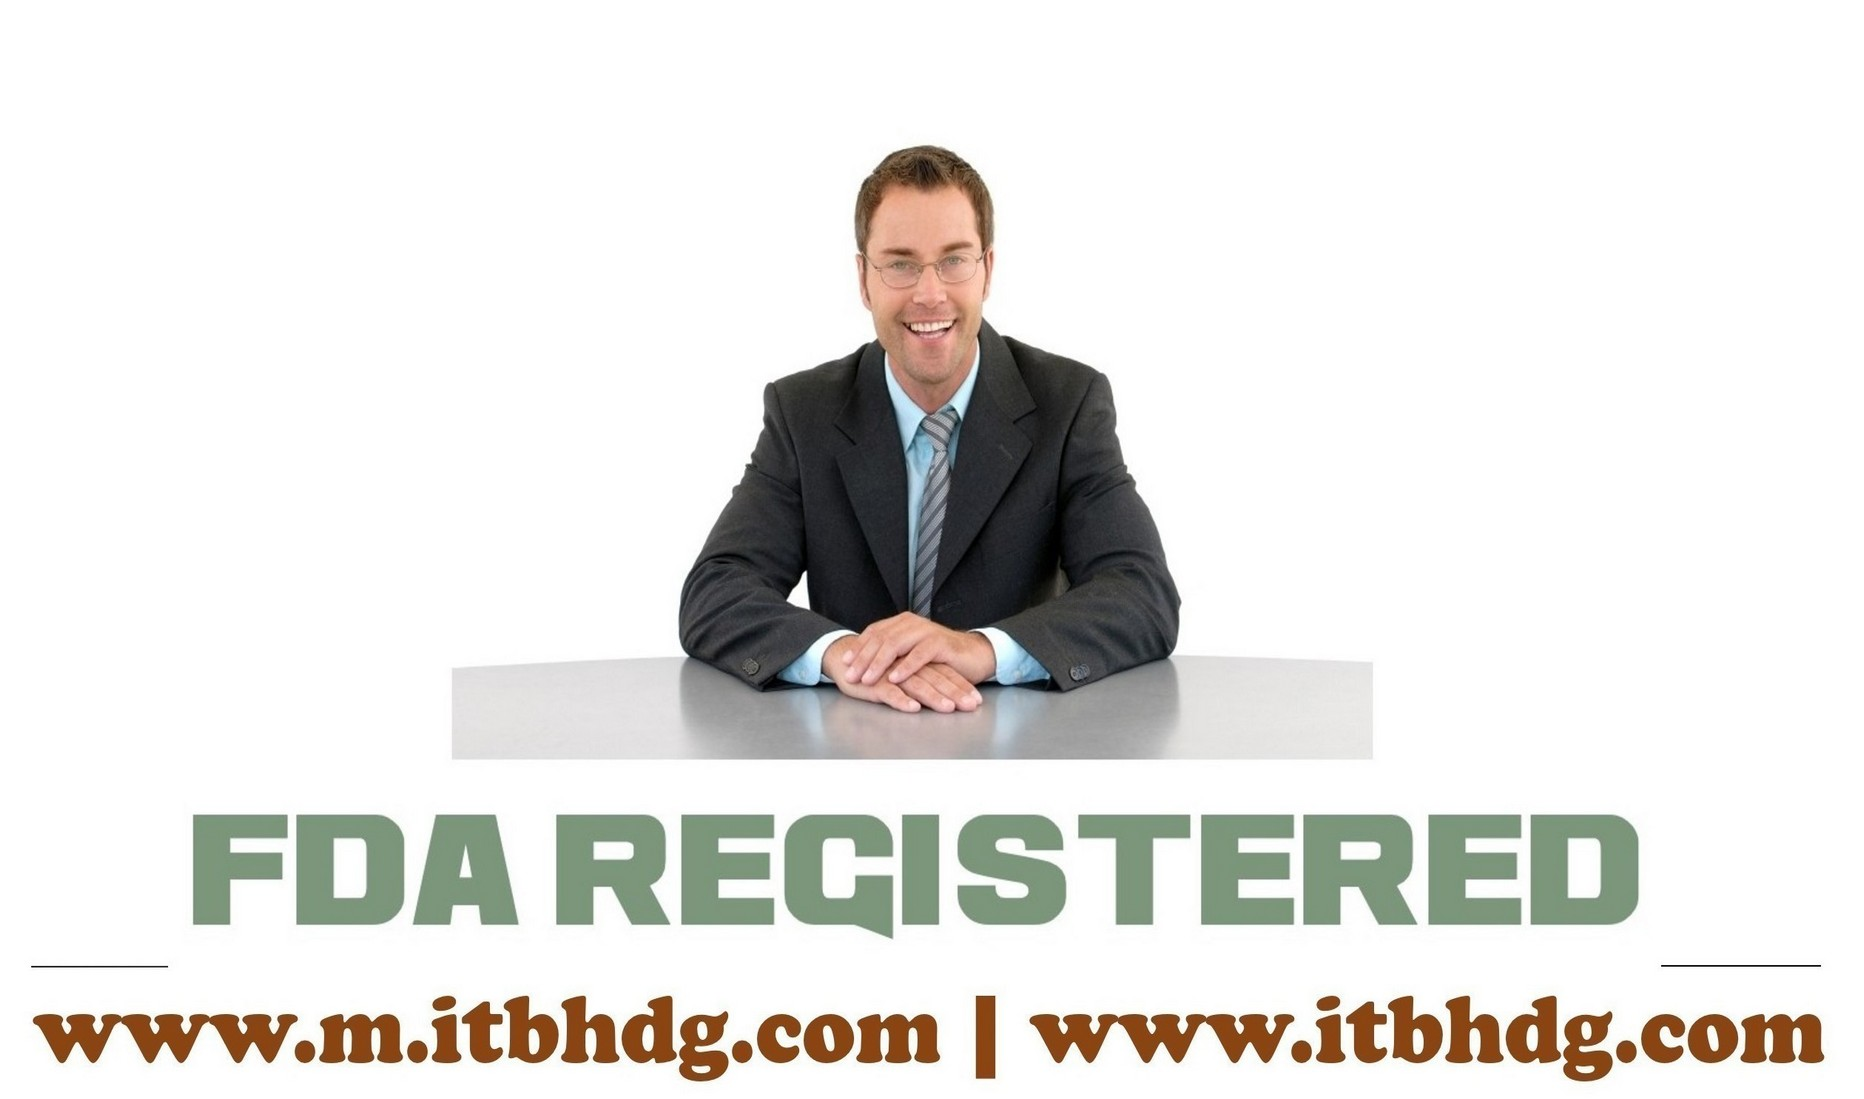 Companies can export or import Foods | Dietary Supplements | Alcoholic Beverages | to or from the USA as long as the facilities that produce, store, or otherwise handle the products are registered with the FDA, and prior notice of incoming shipments is provided to the FDA | www.itbhdg.com